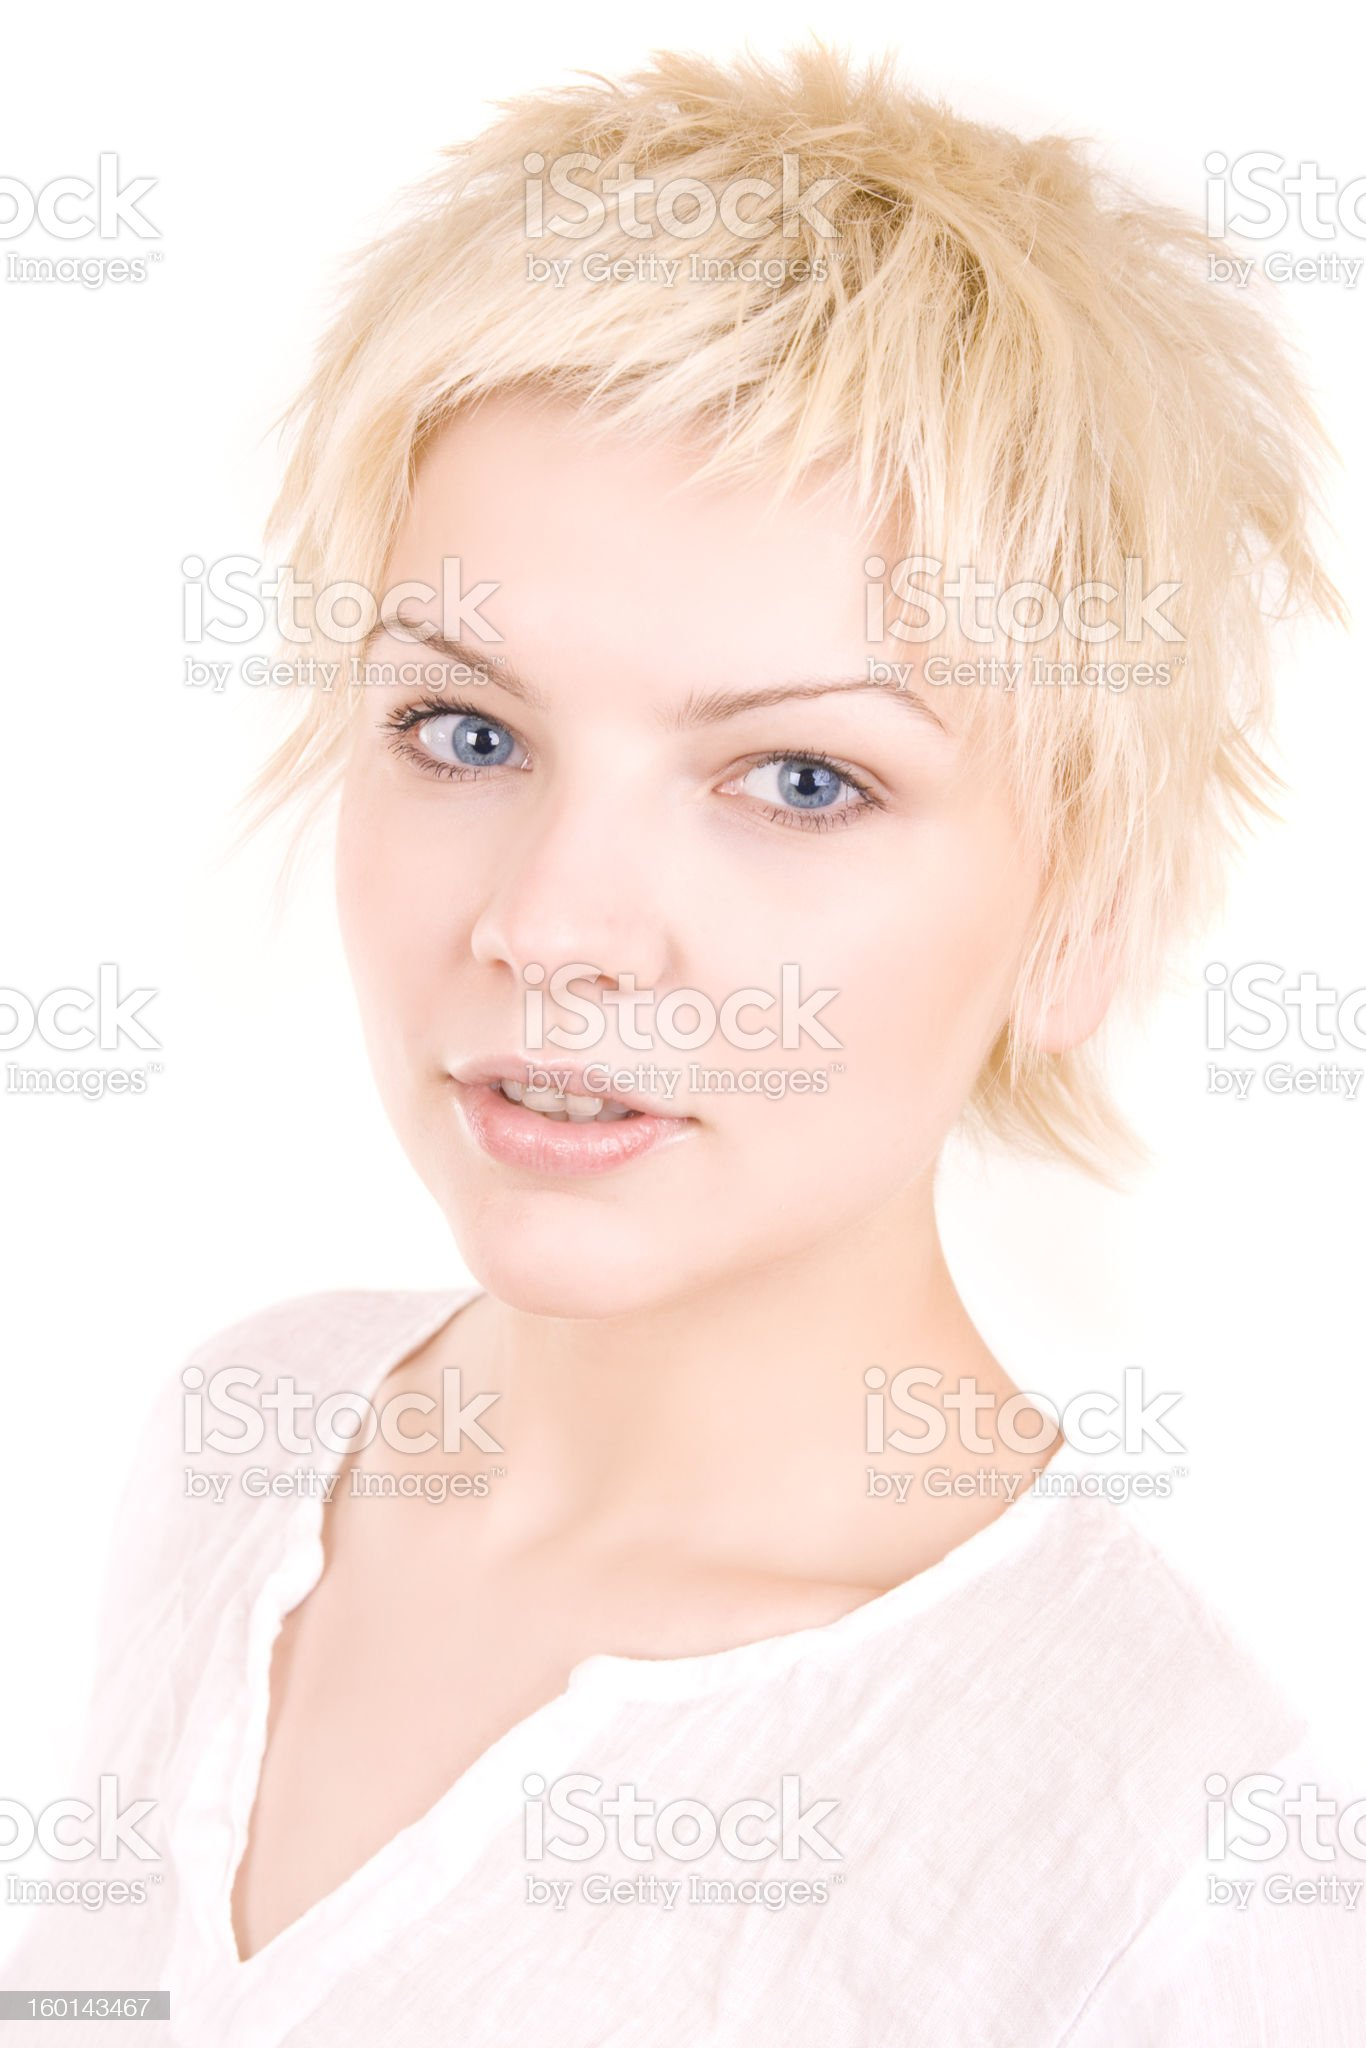 casual girl royalty-free stock photo